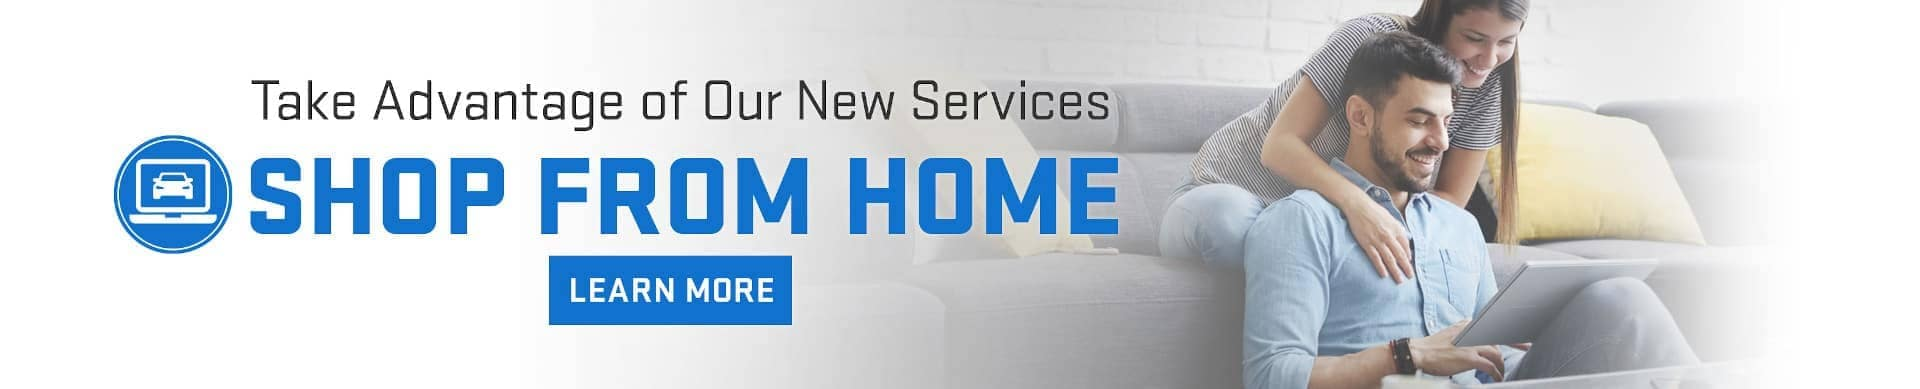 Shop_From_Home_banner_rotator-2x